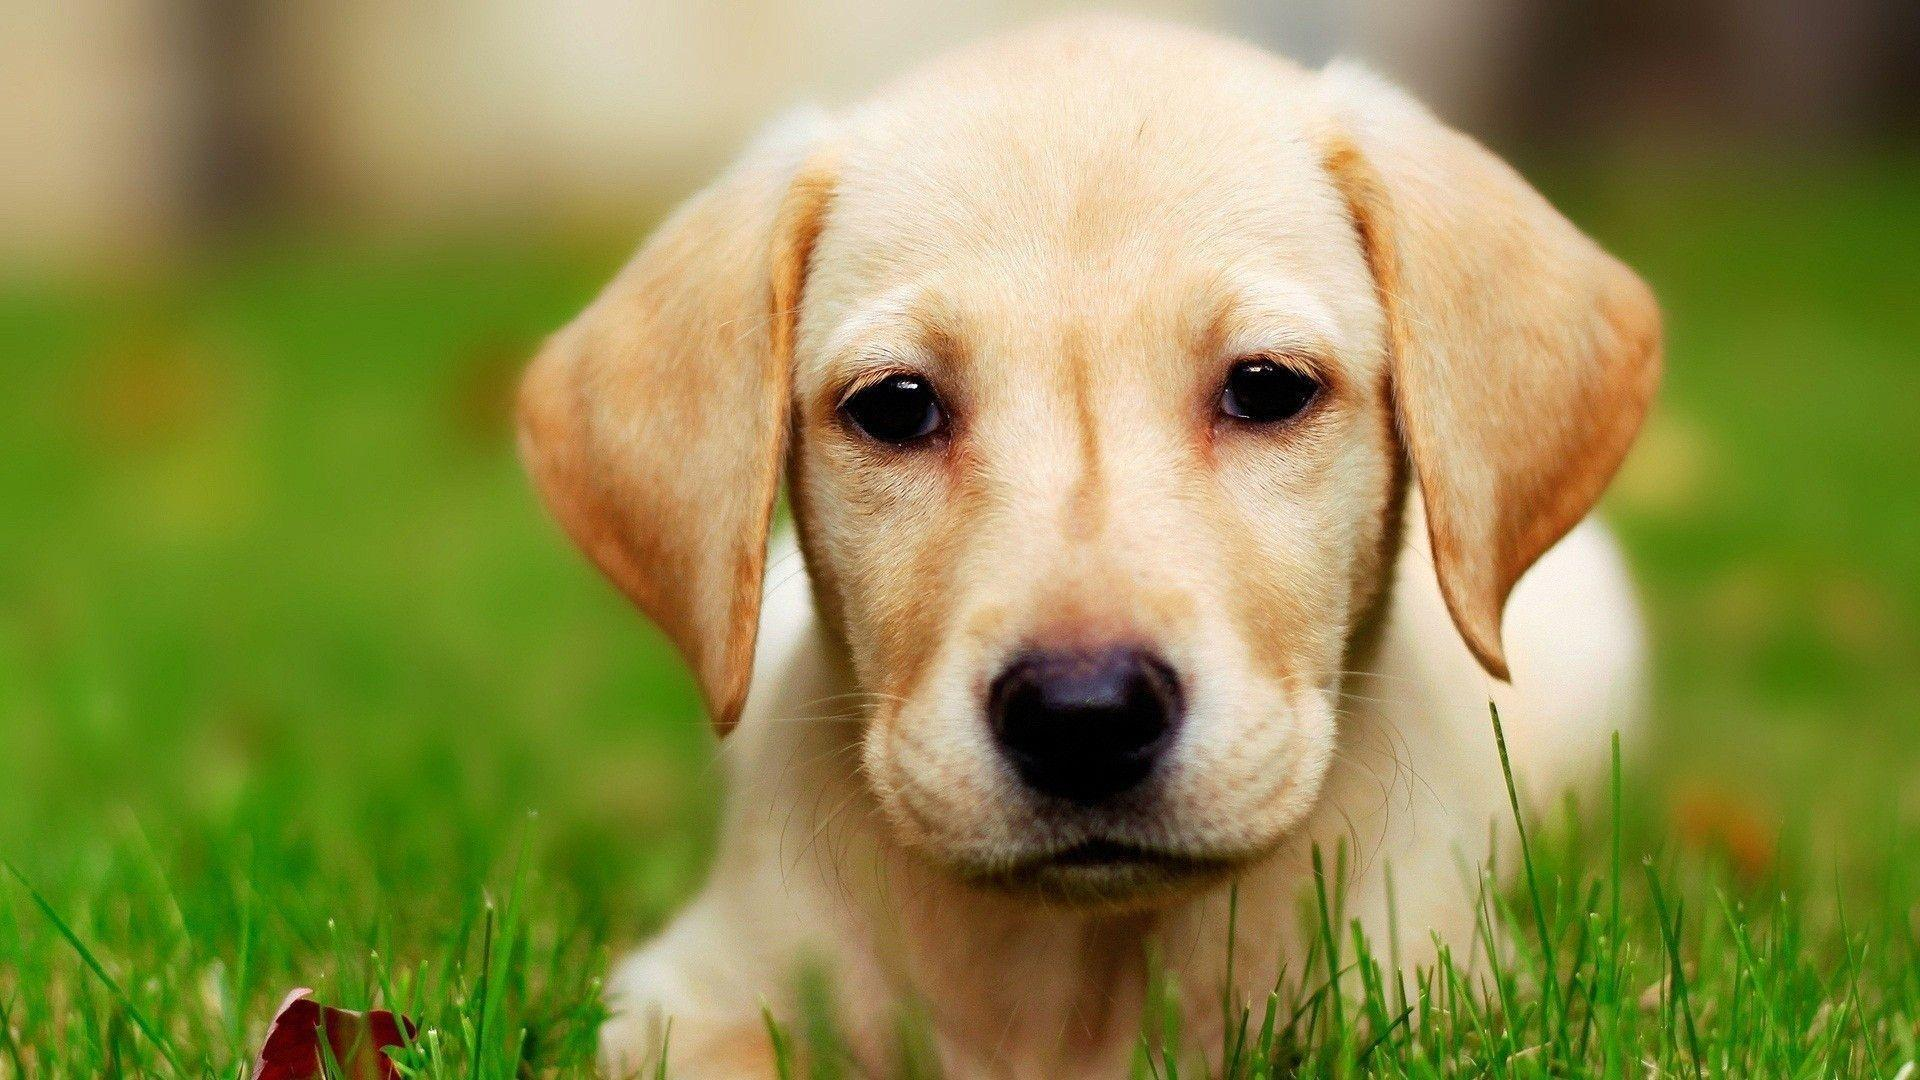 Dog Labrador wallpaper - 981891